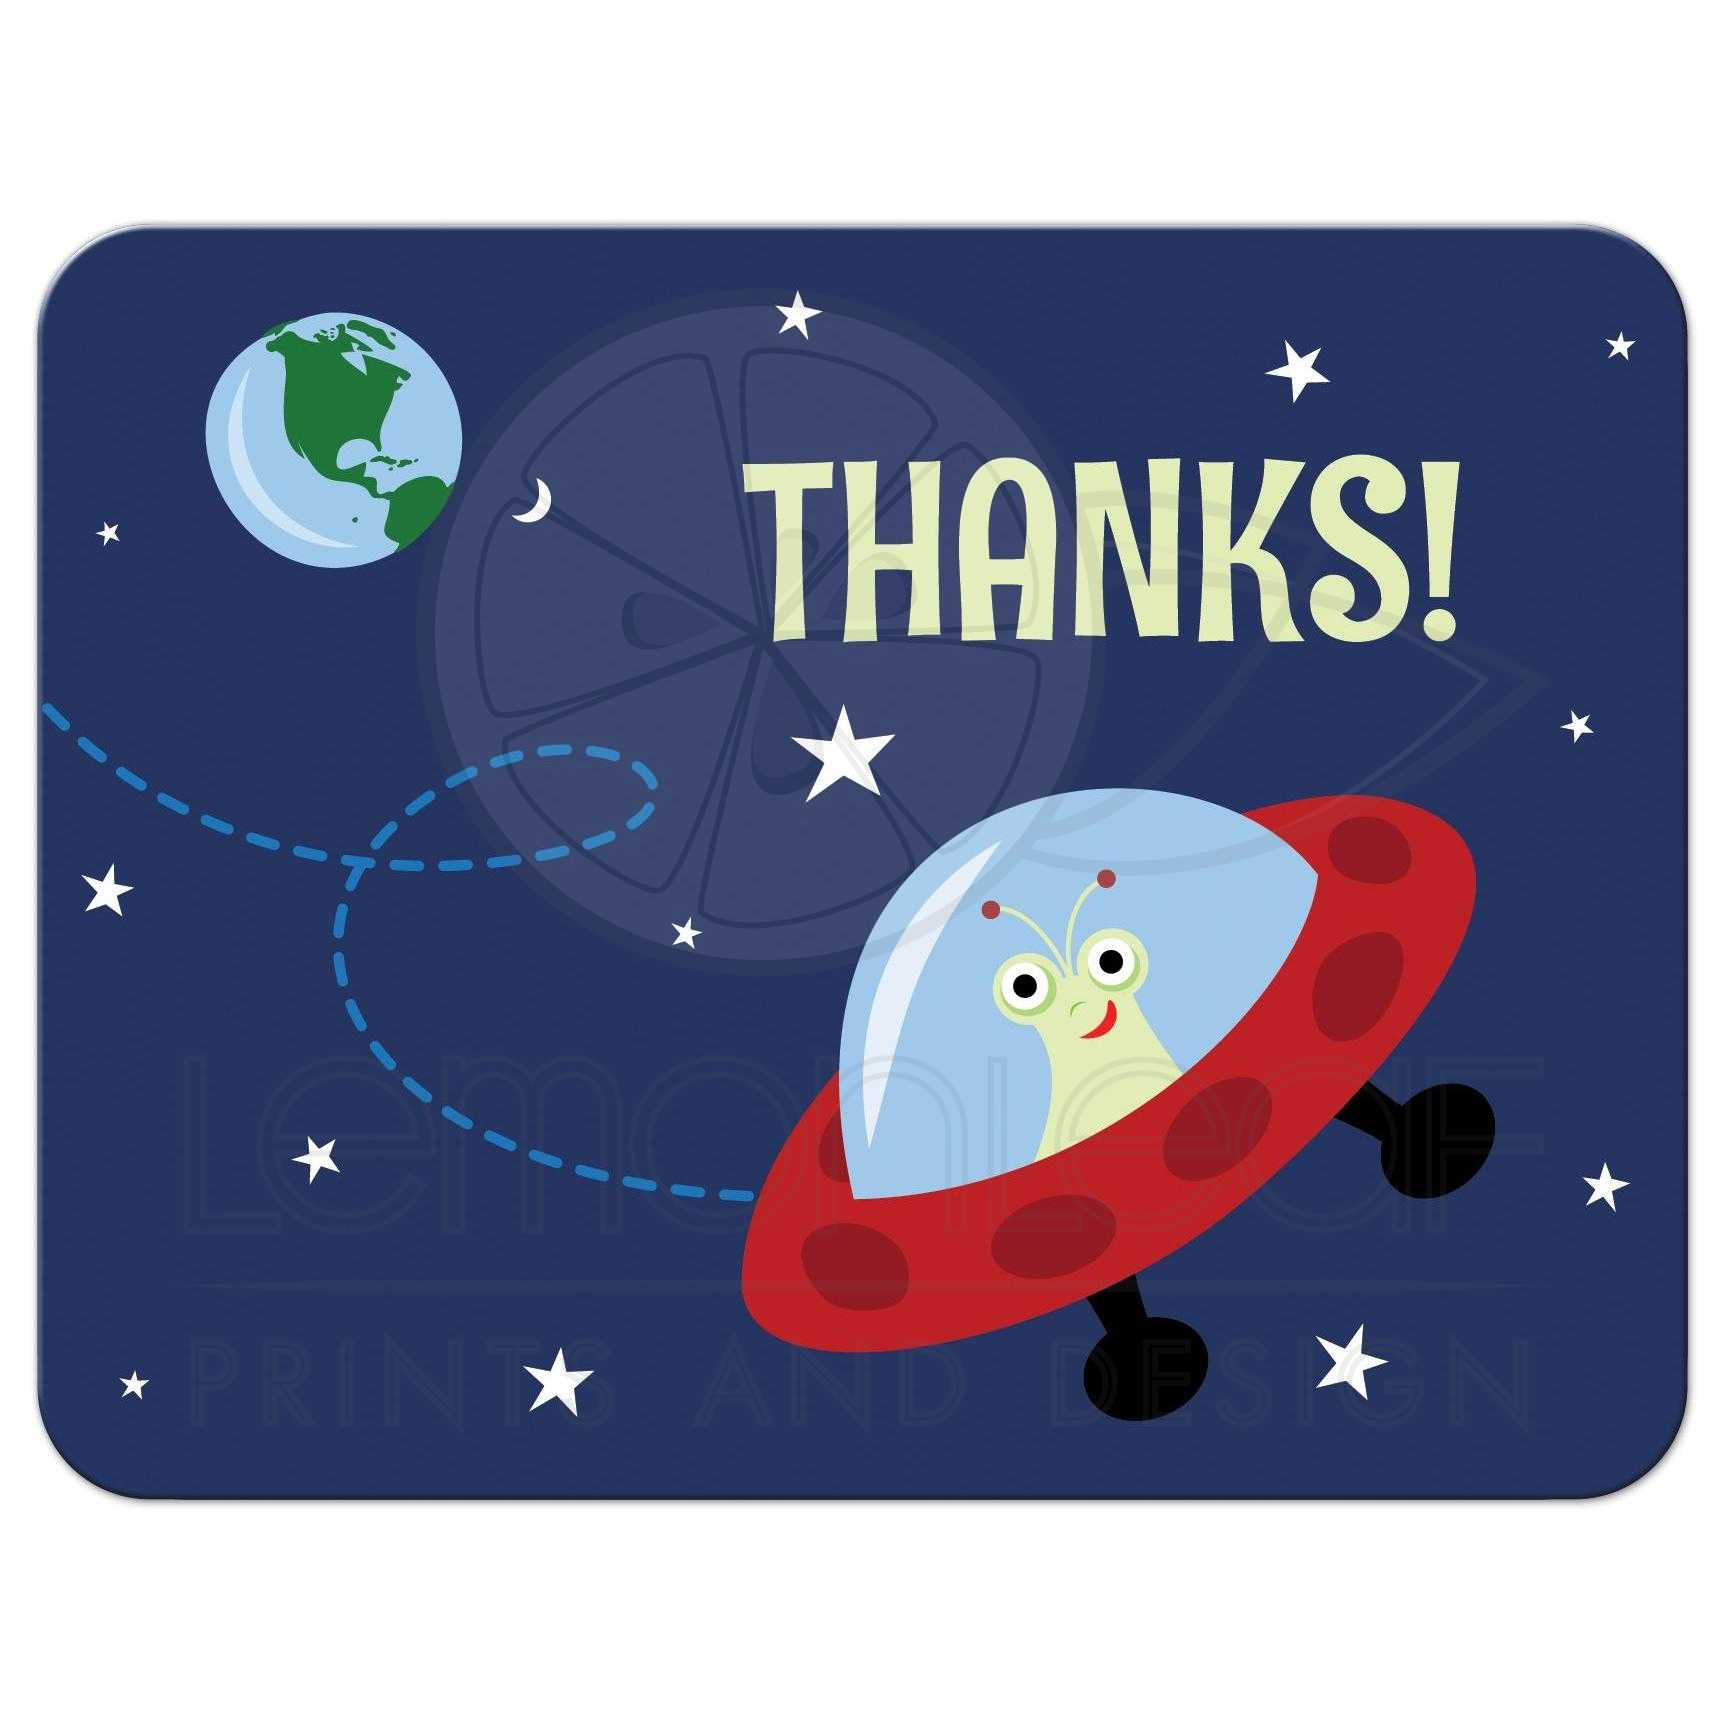 space themed flat birthday party thank you card with burlap and lace table runner burlap and lace curtains